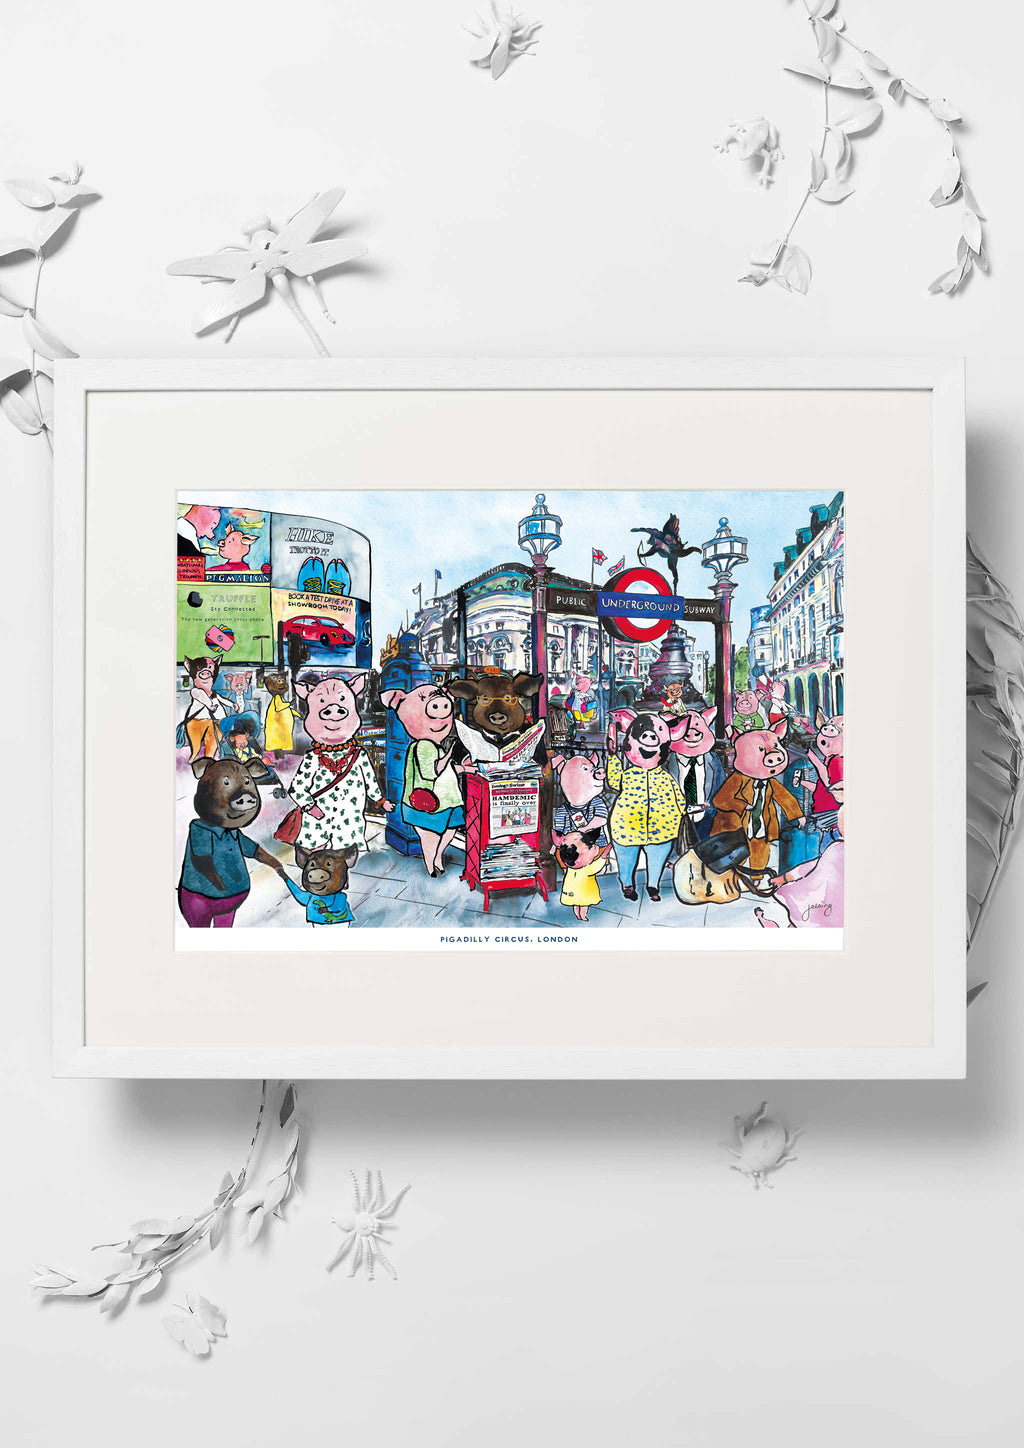 Pigadilly Circus Nursery Art Print